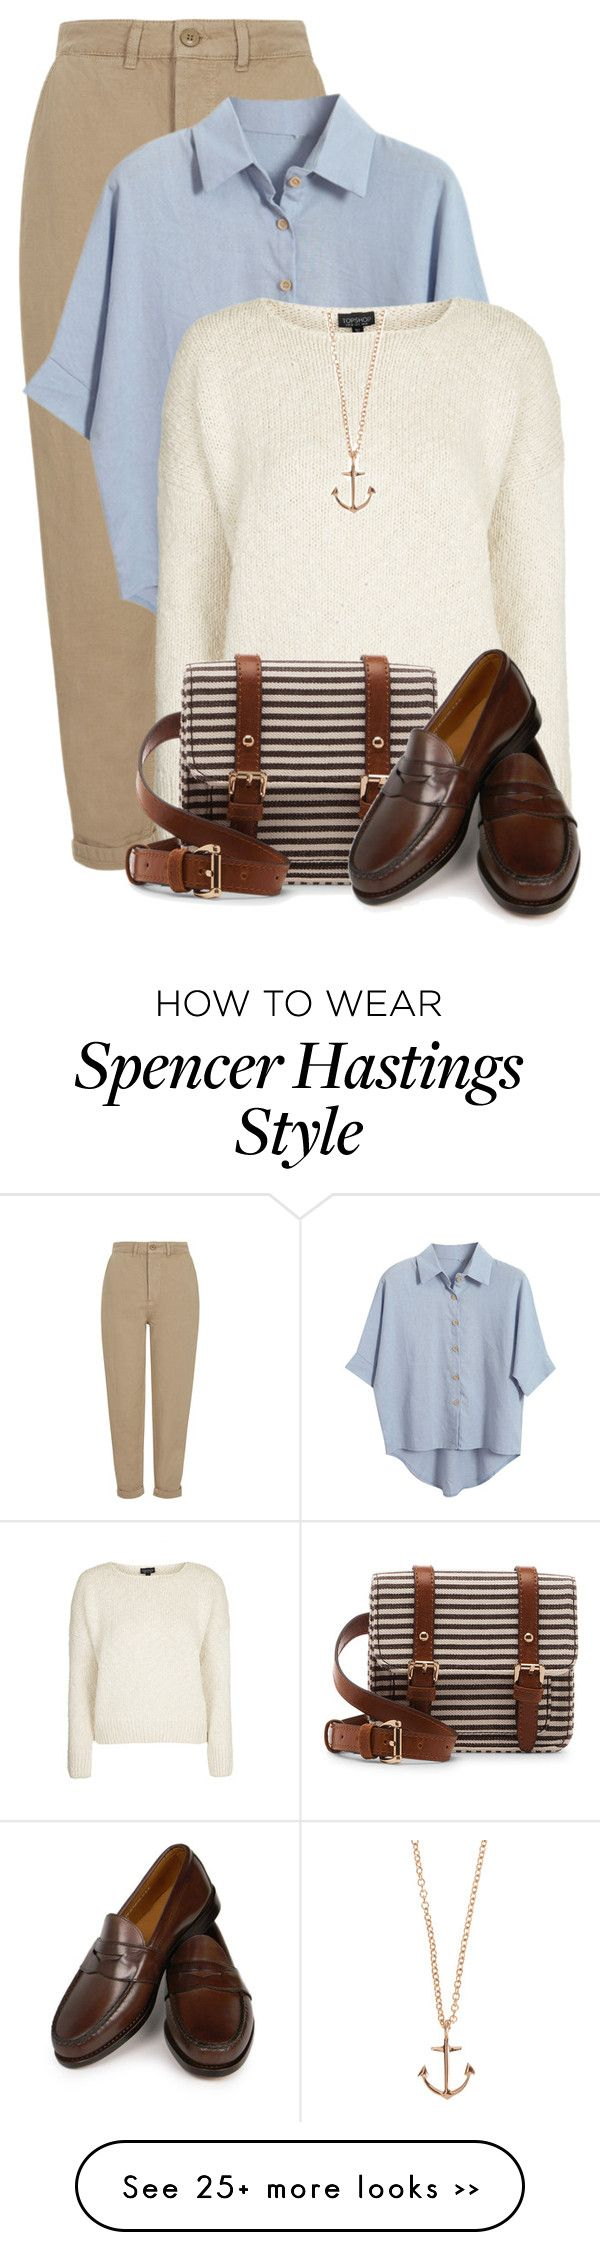 Fashion free on Hastings  size Search and   Spencer Polyvore womens  alexa  girl        run by    Polyvore hastings           spencer